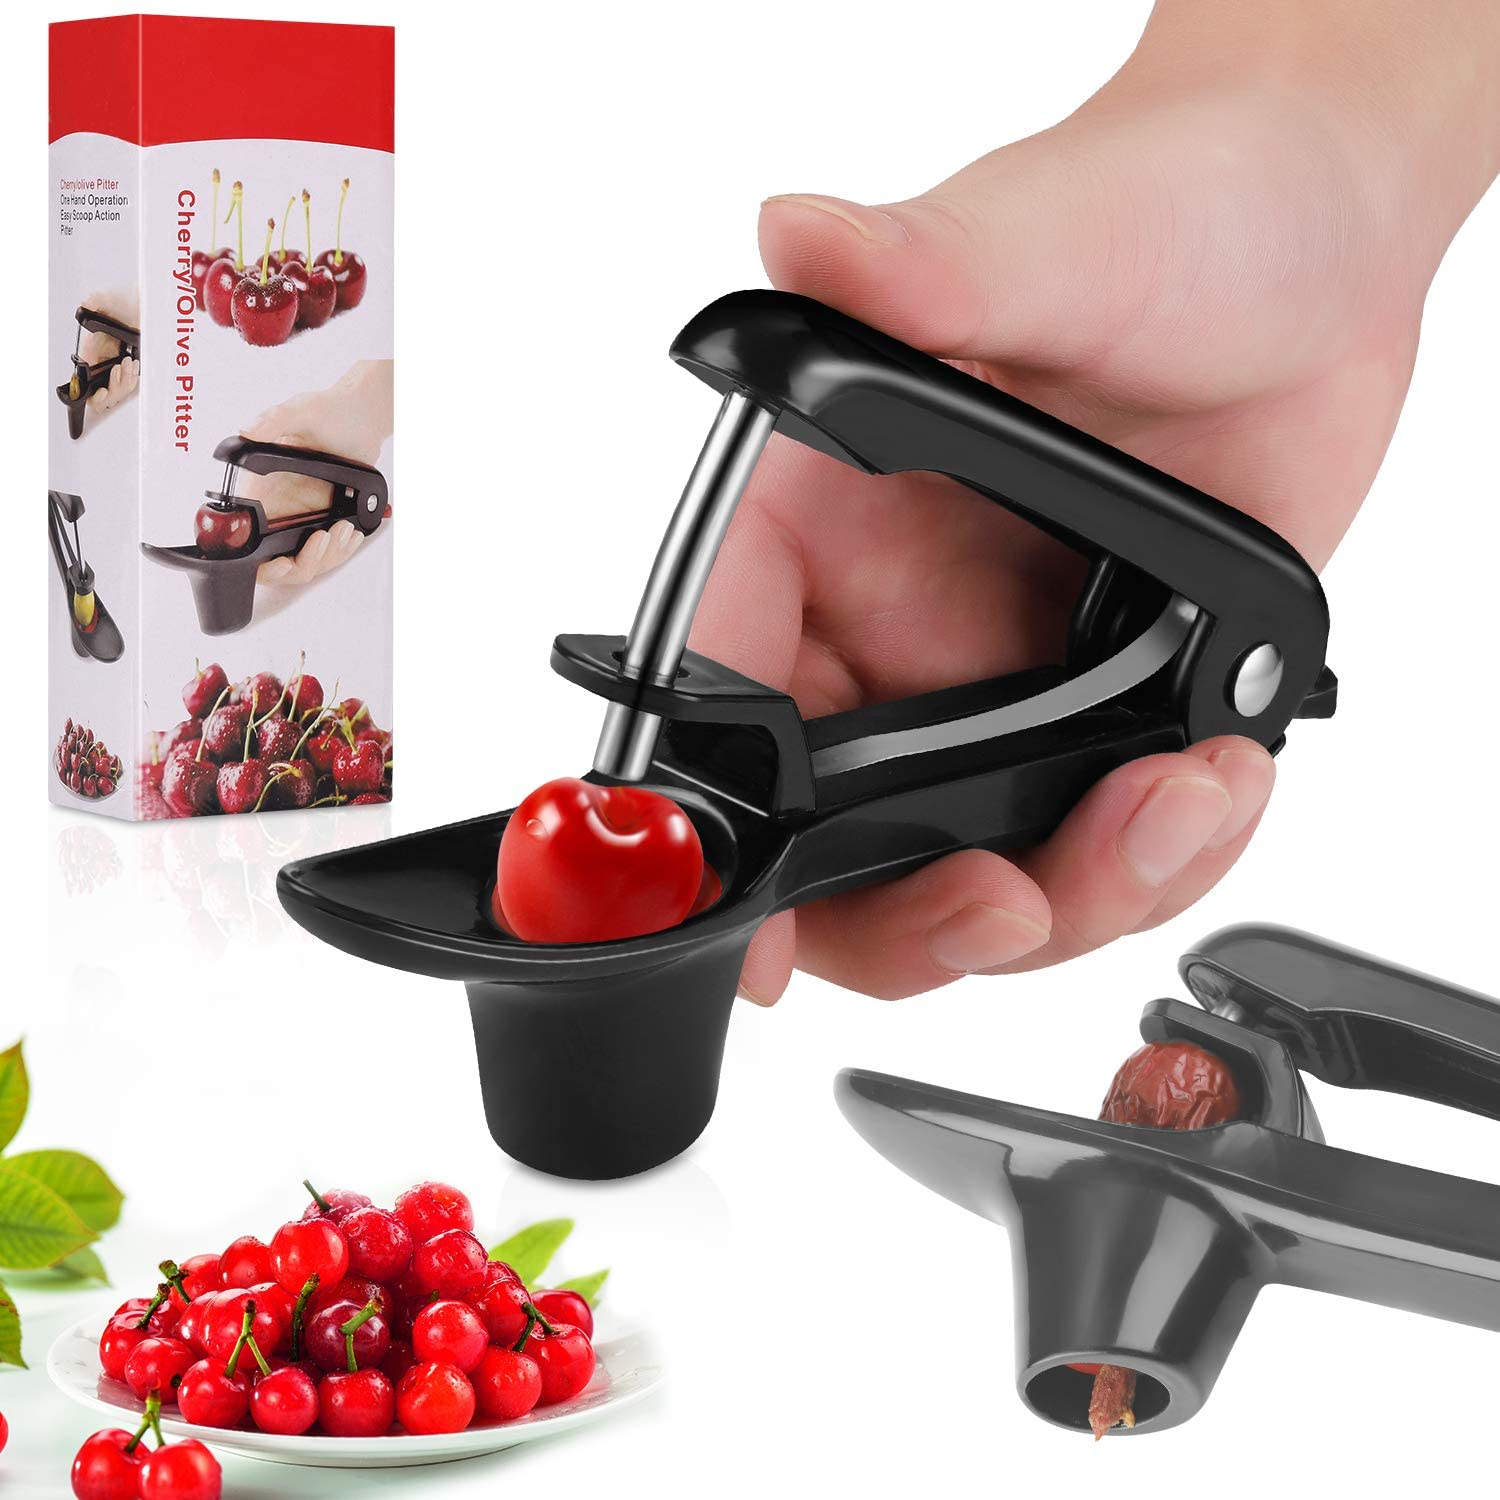 Cherry Pitter, Portable Olive and Cherry Pitter Tool, Multi-Function Fruit Corer and Pitter Remover, Suitable for Home Kitchen, Cherry, Jujube and Red Date, Hawthorn